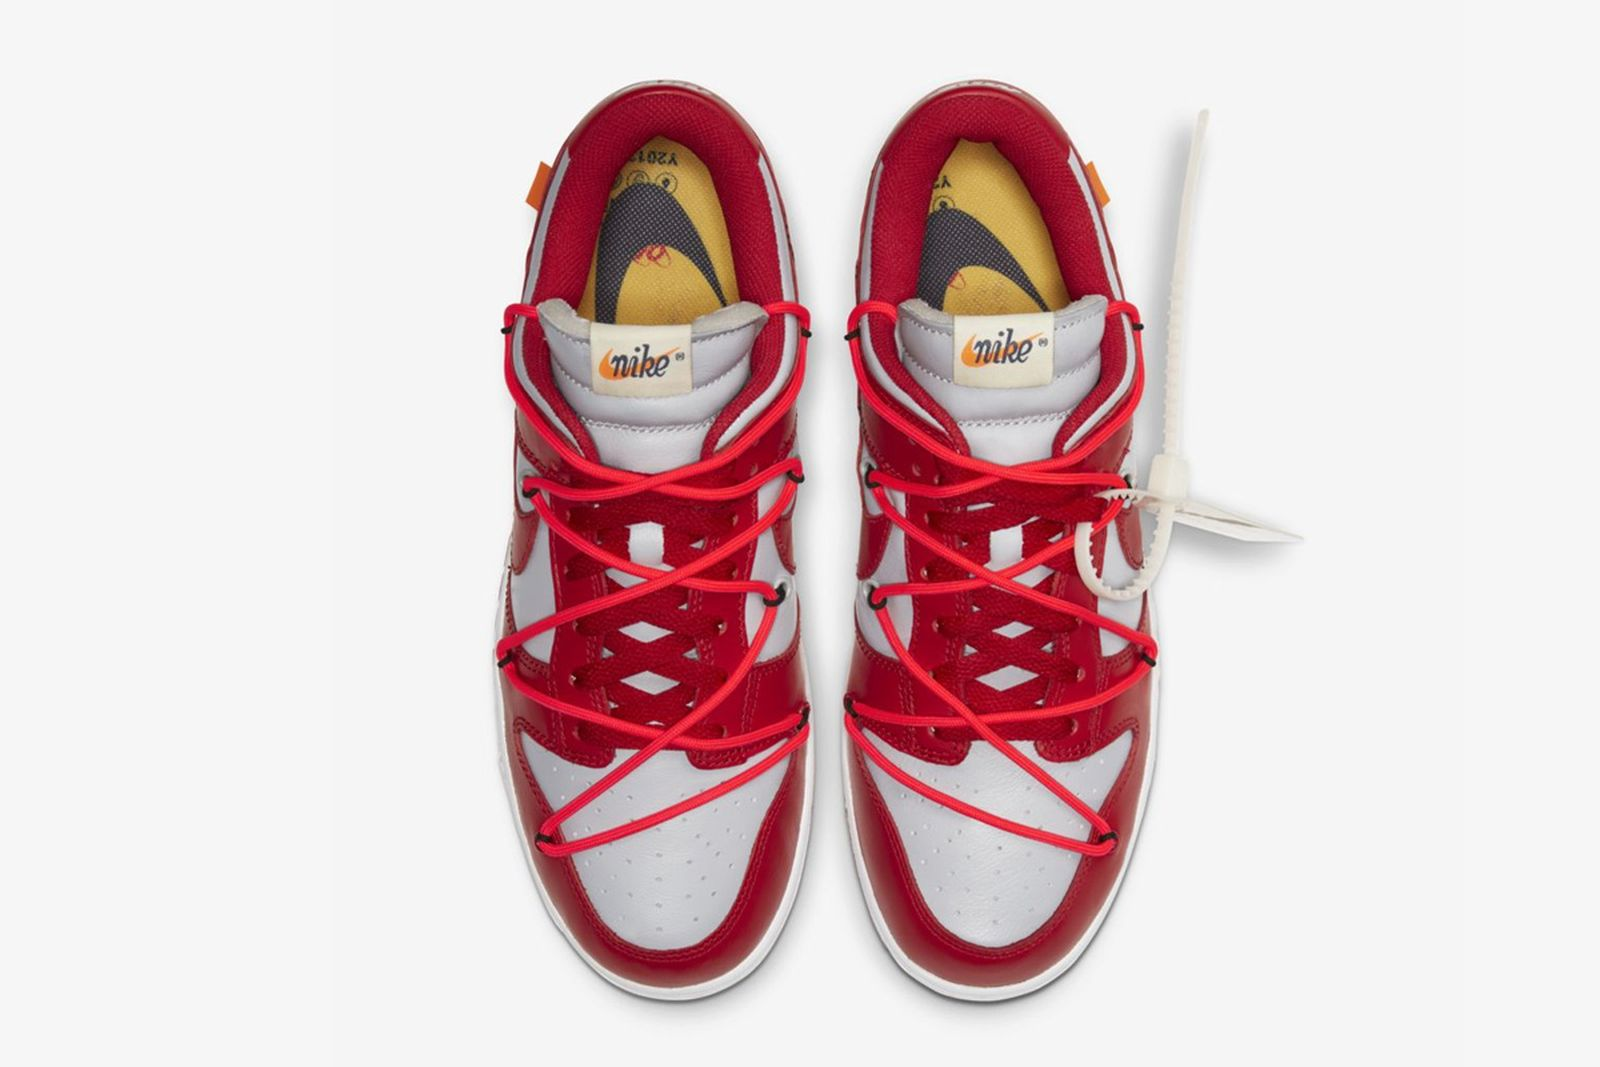 off-white-nike-dunk-low-pack-release-date-price-11